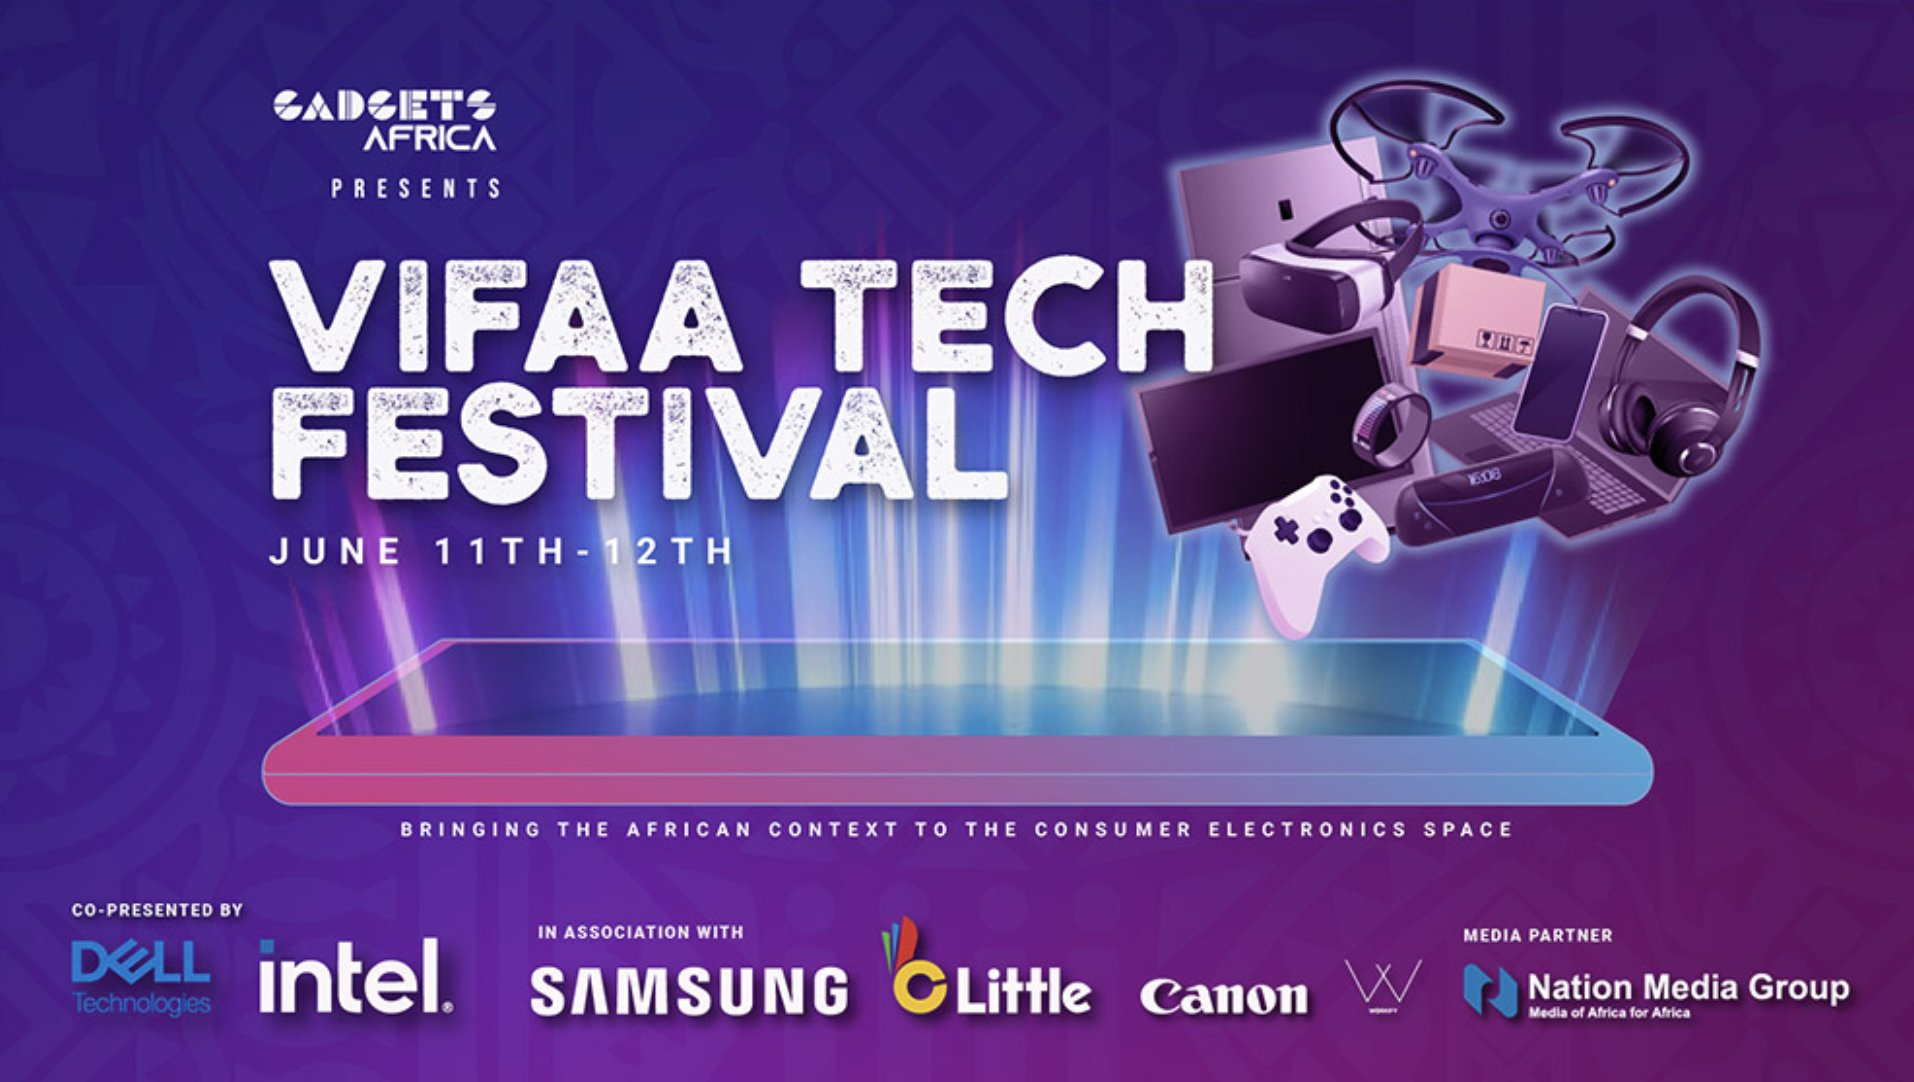 Vifaa Tech Festival Recap: Fiery Panel Discussions, Fun Chats and Surprising Award Winners